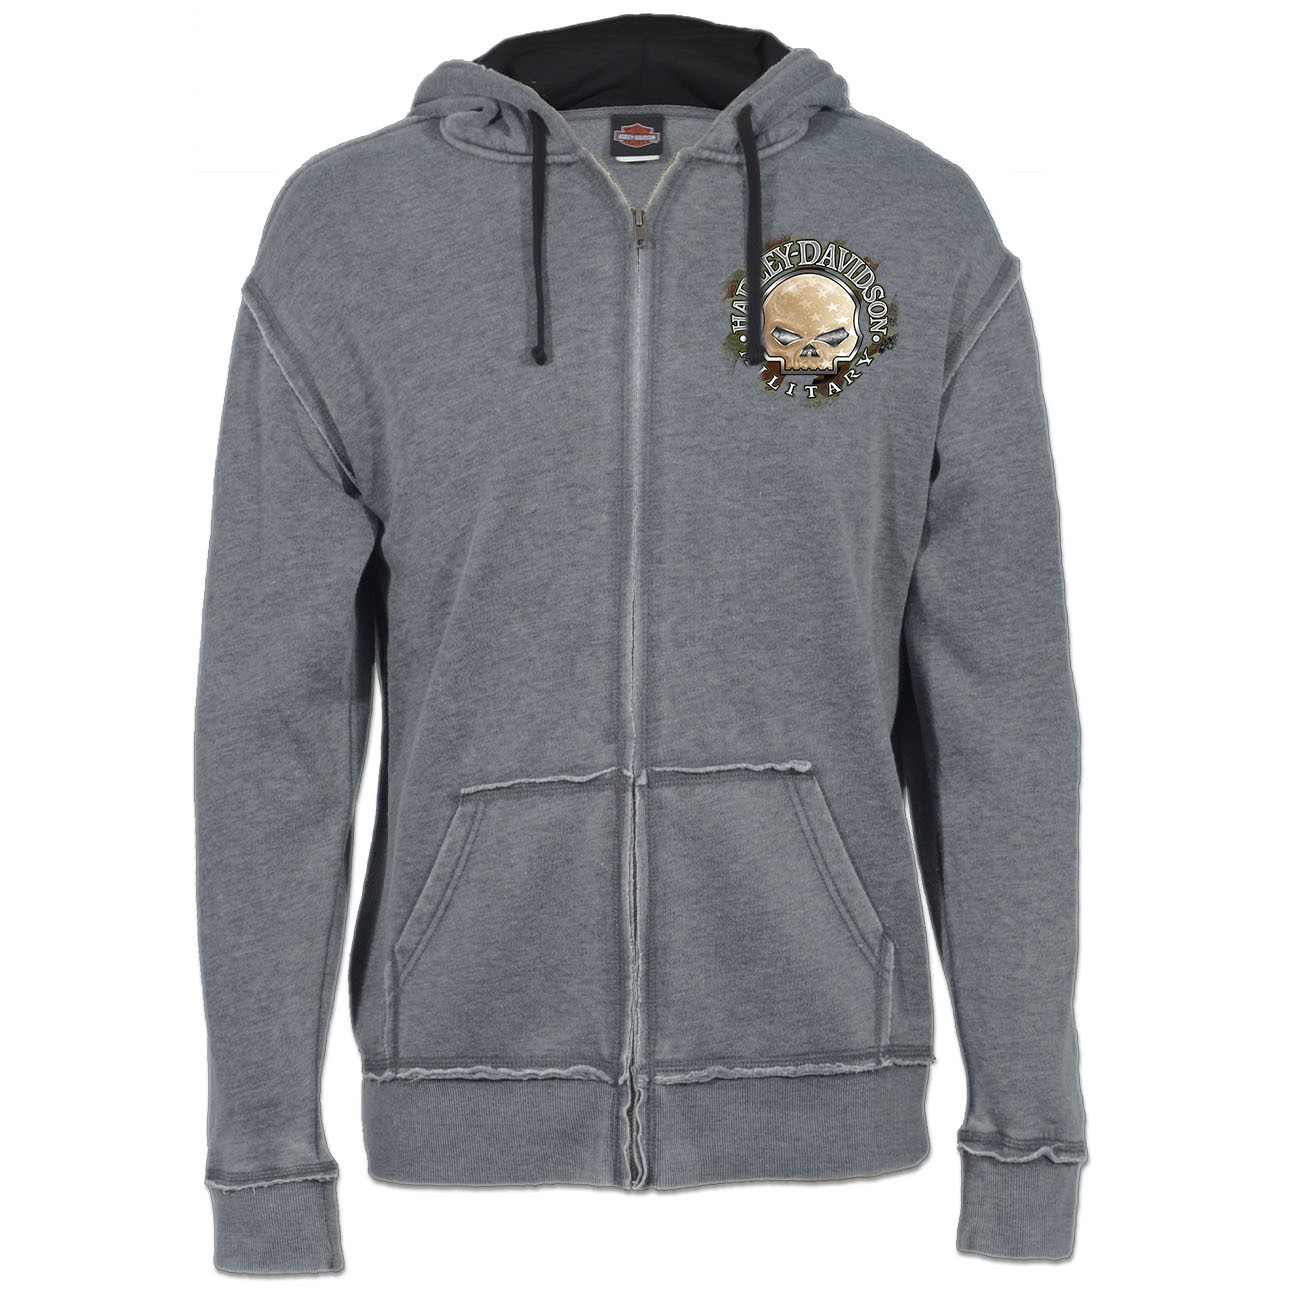 Harley-Davidson Men's Burnout Wash Zippered Hooded Sweatshirt with Raw Edge - Overseas Tour | G Star